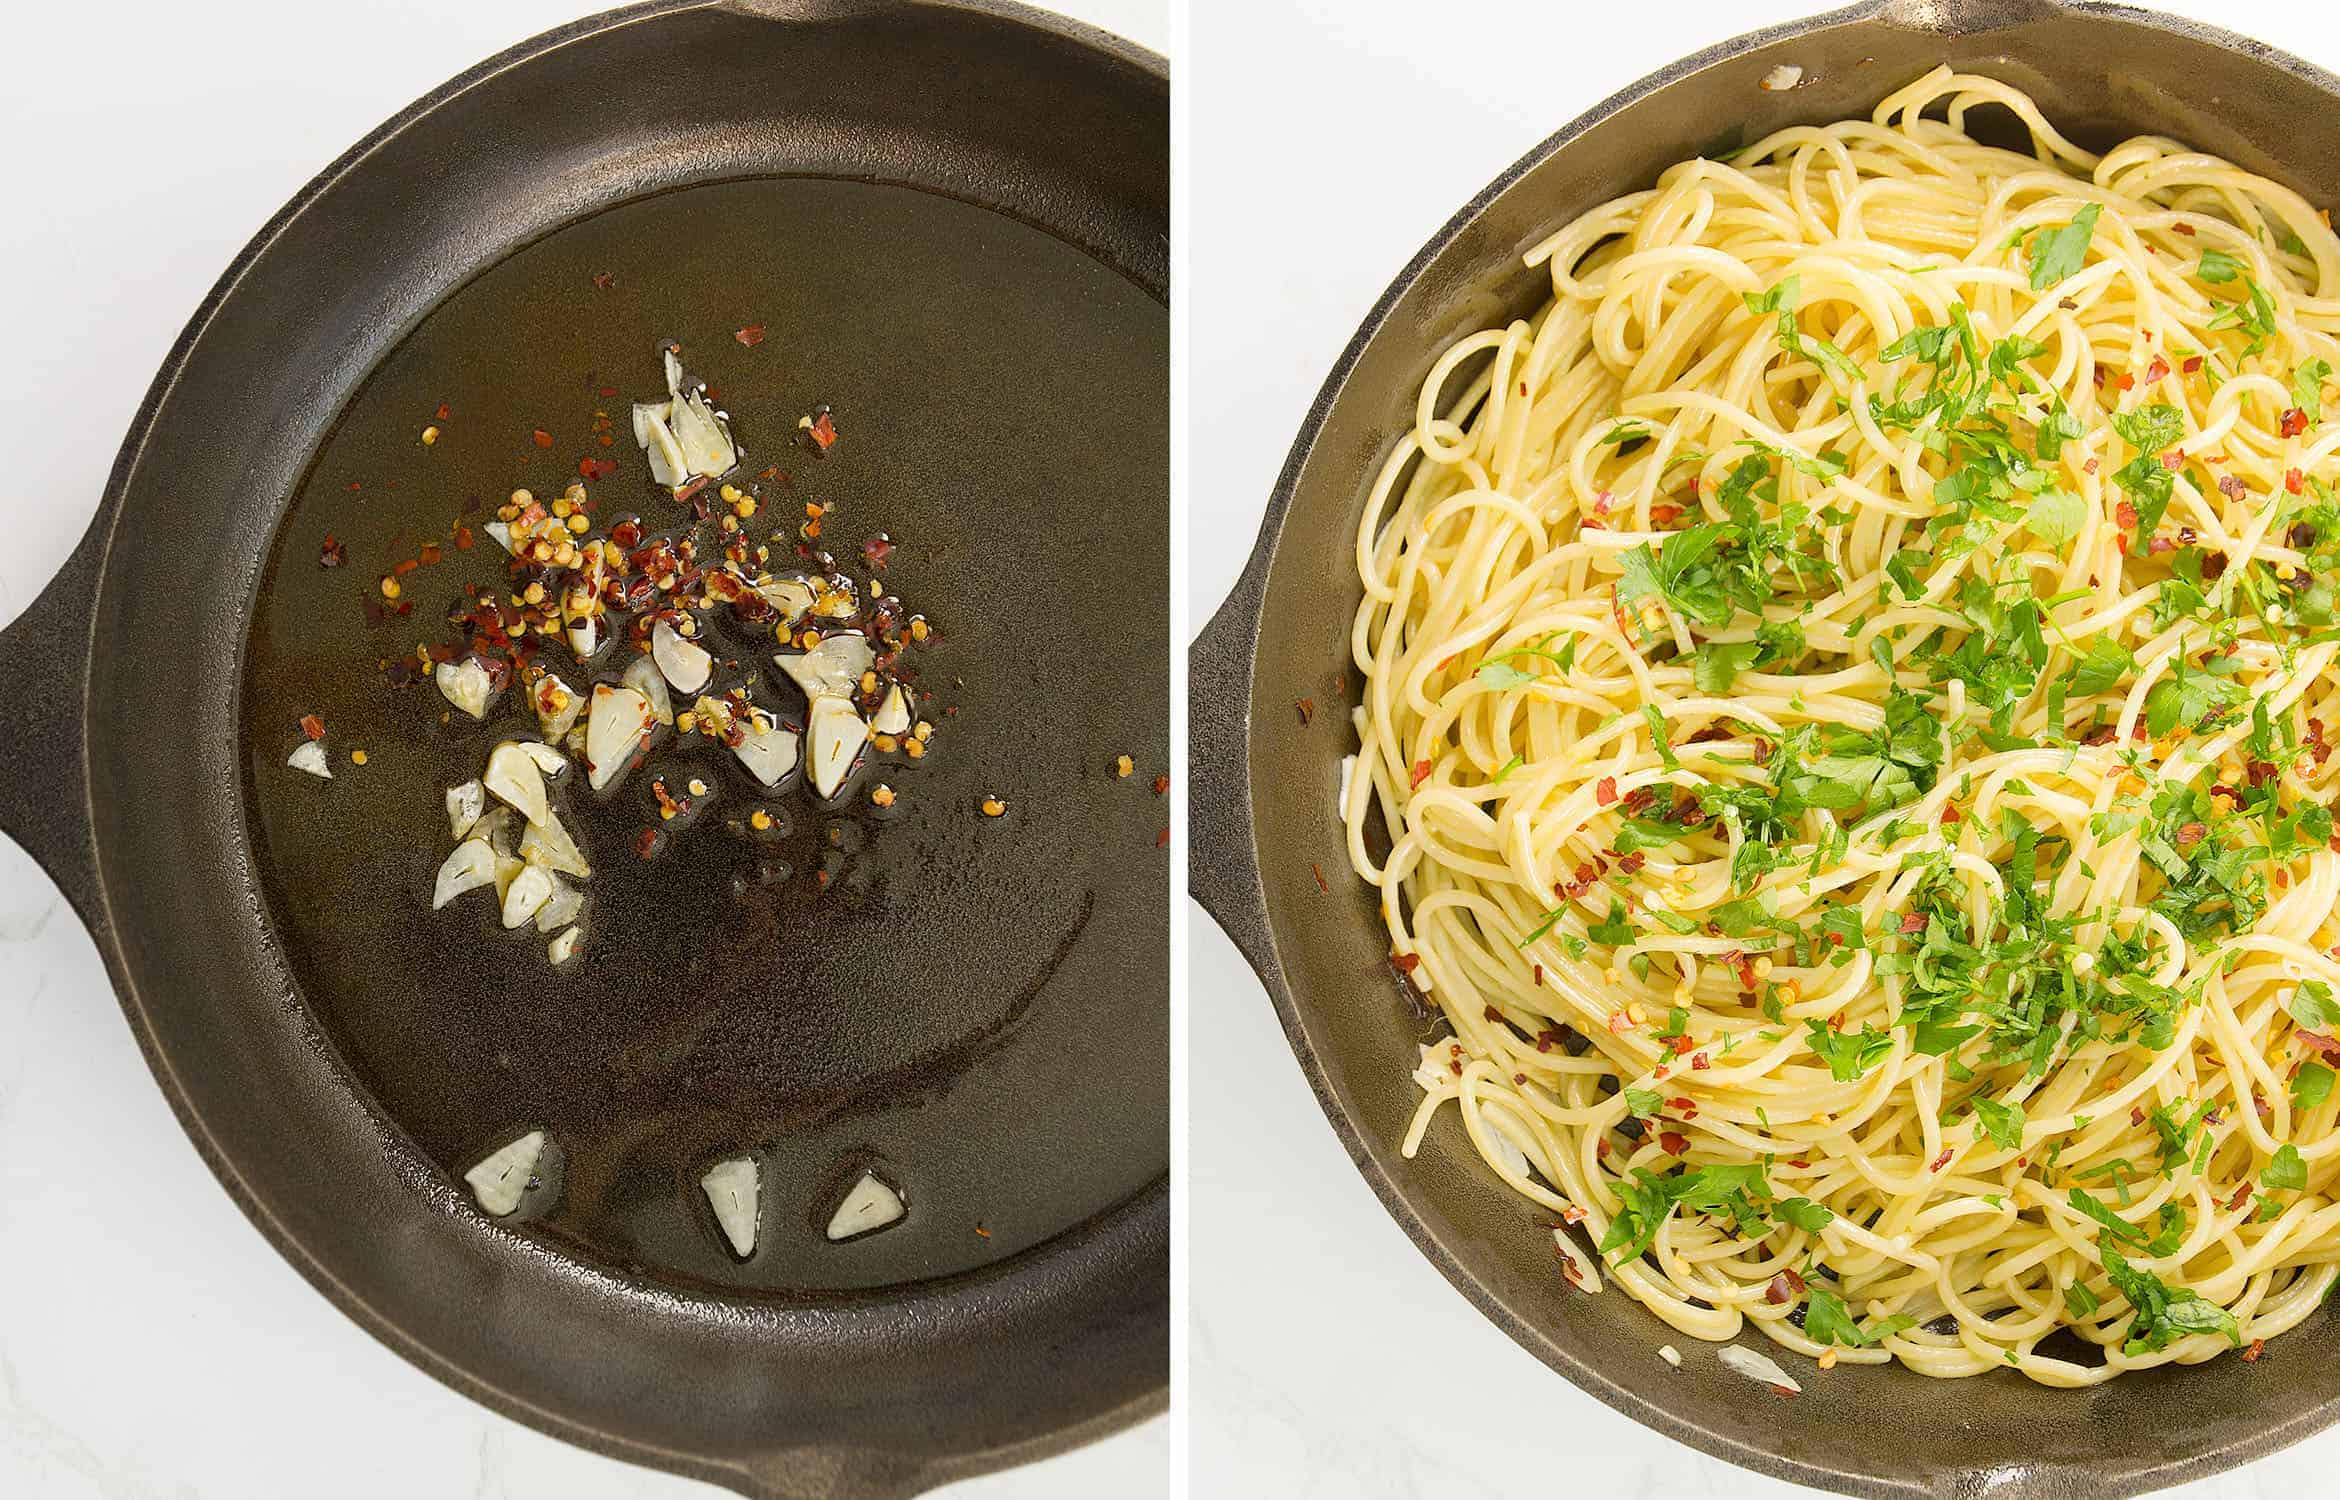 The first image shows olive oil, garlic and chili in a skillet. The second image shows the spaghetti in the same skillet.